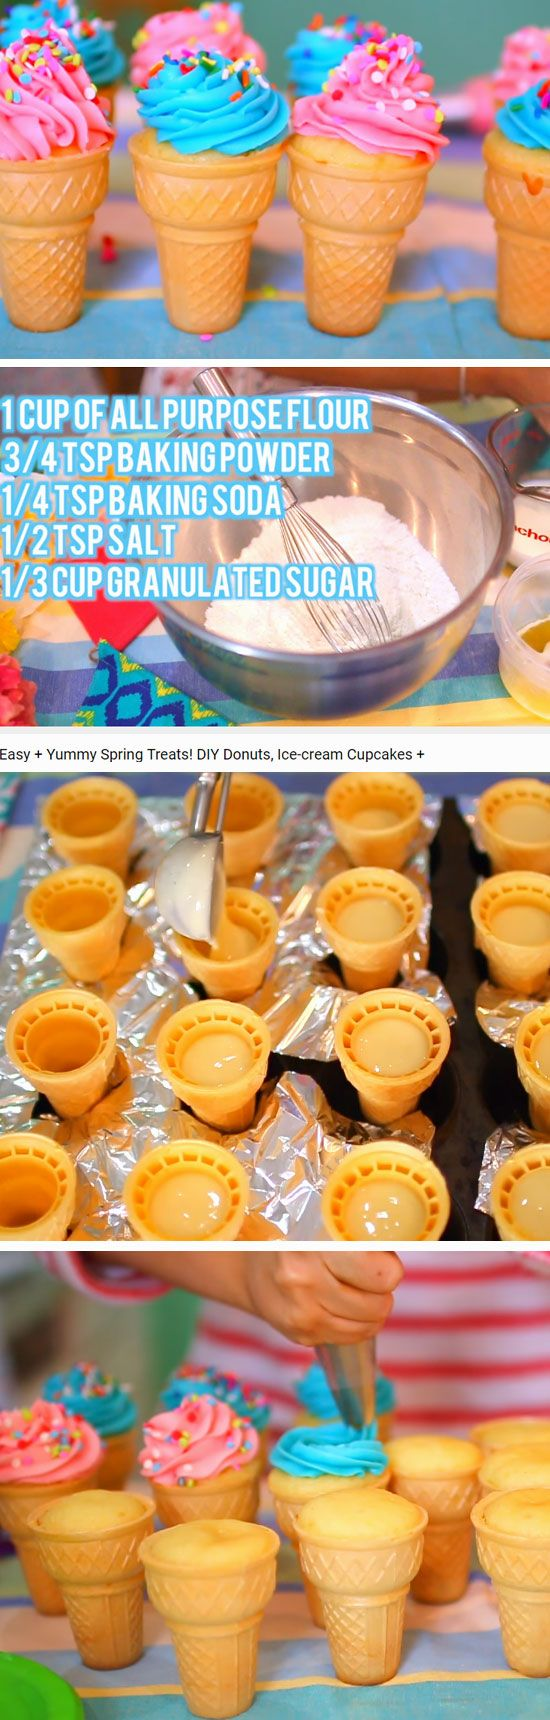 Ice Cream Cupcakes | DIY Spring Treats for School Kids | Easy Easter Dessert Ideas for Kids to Make